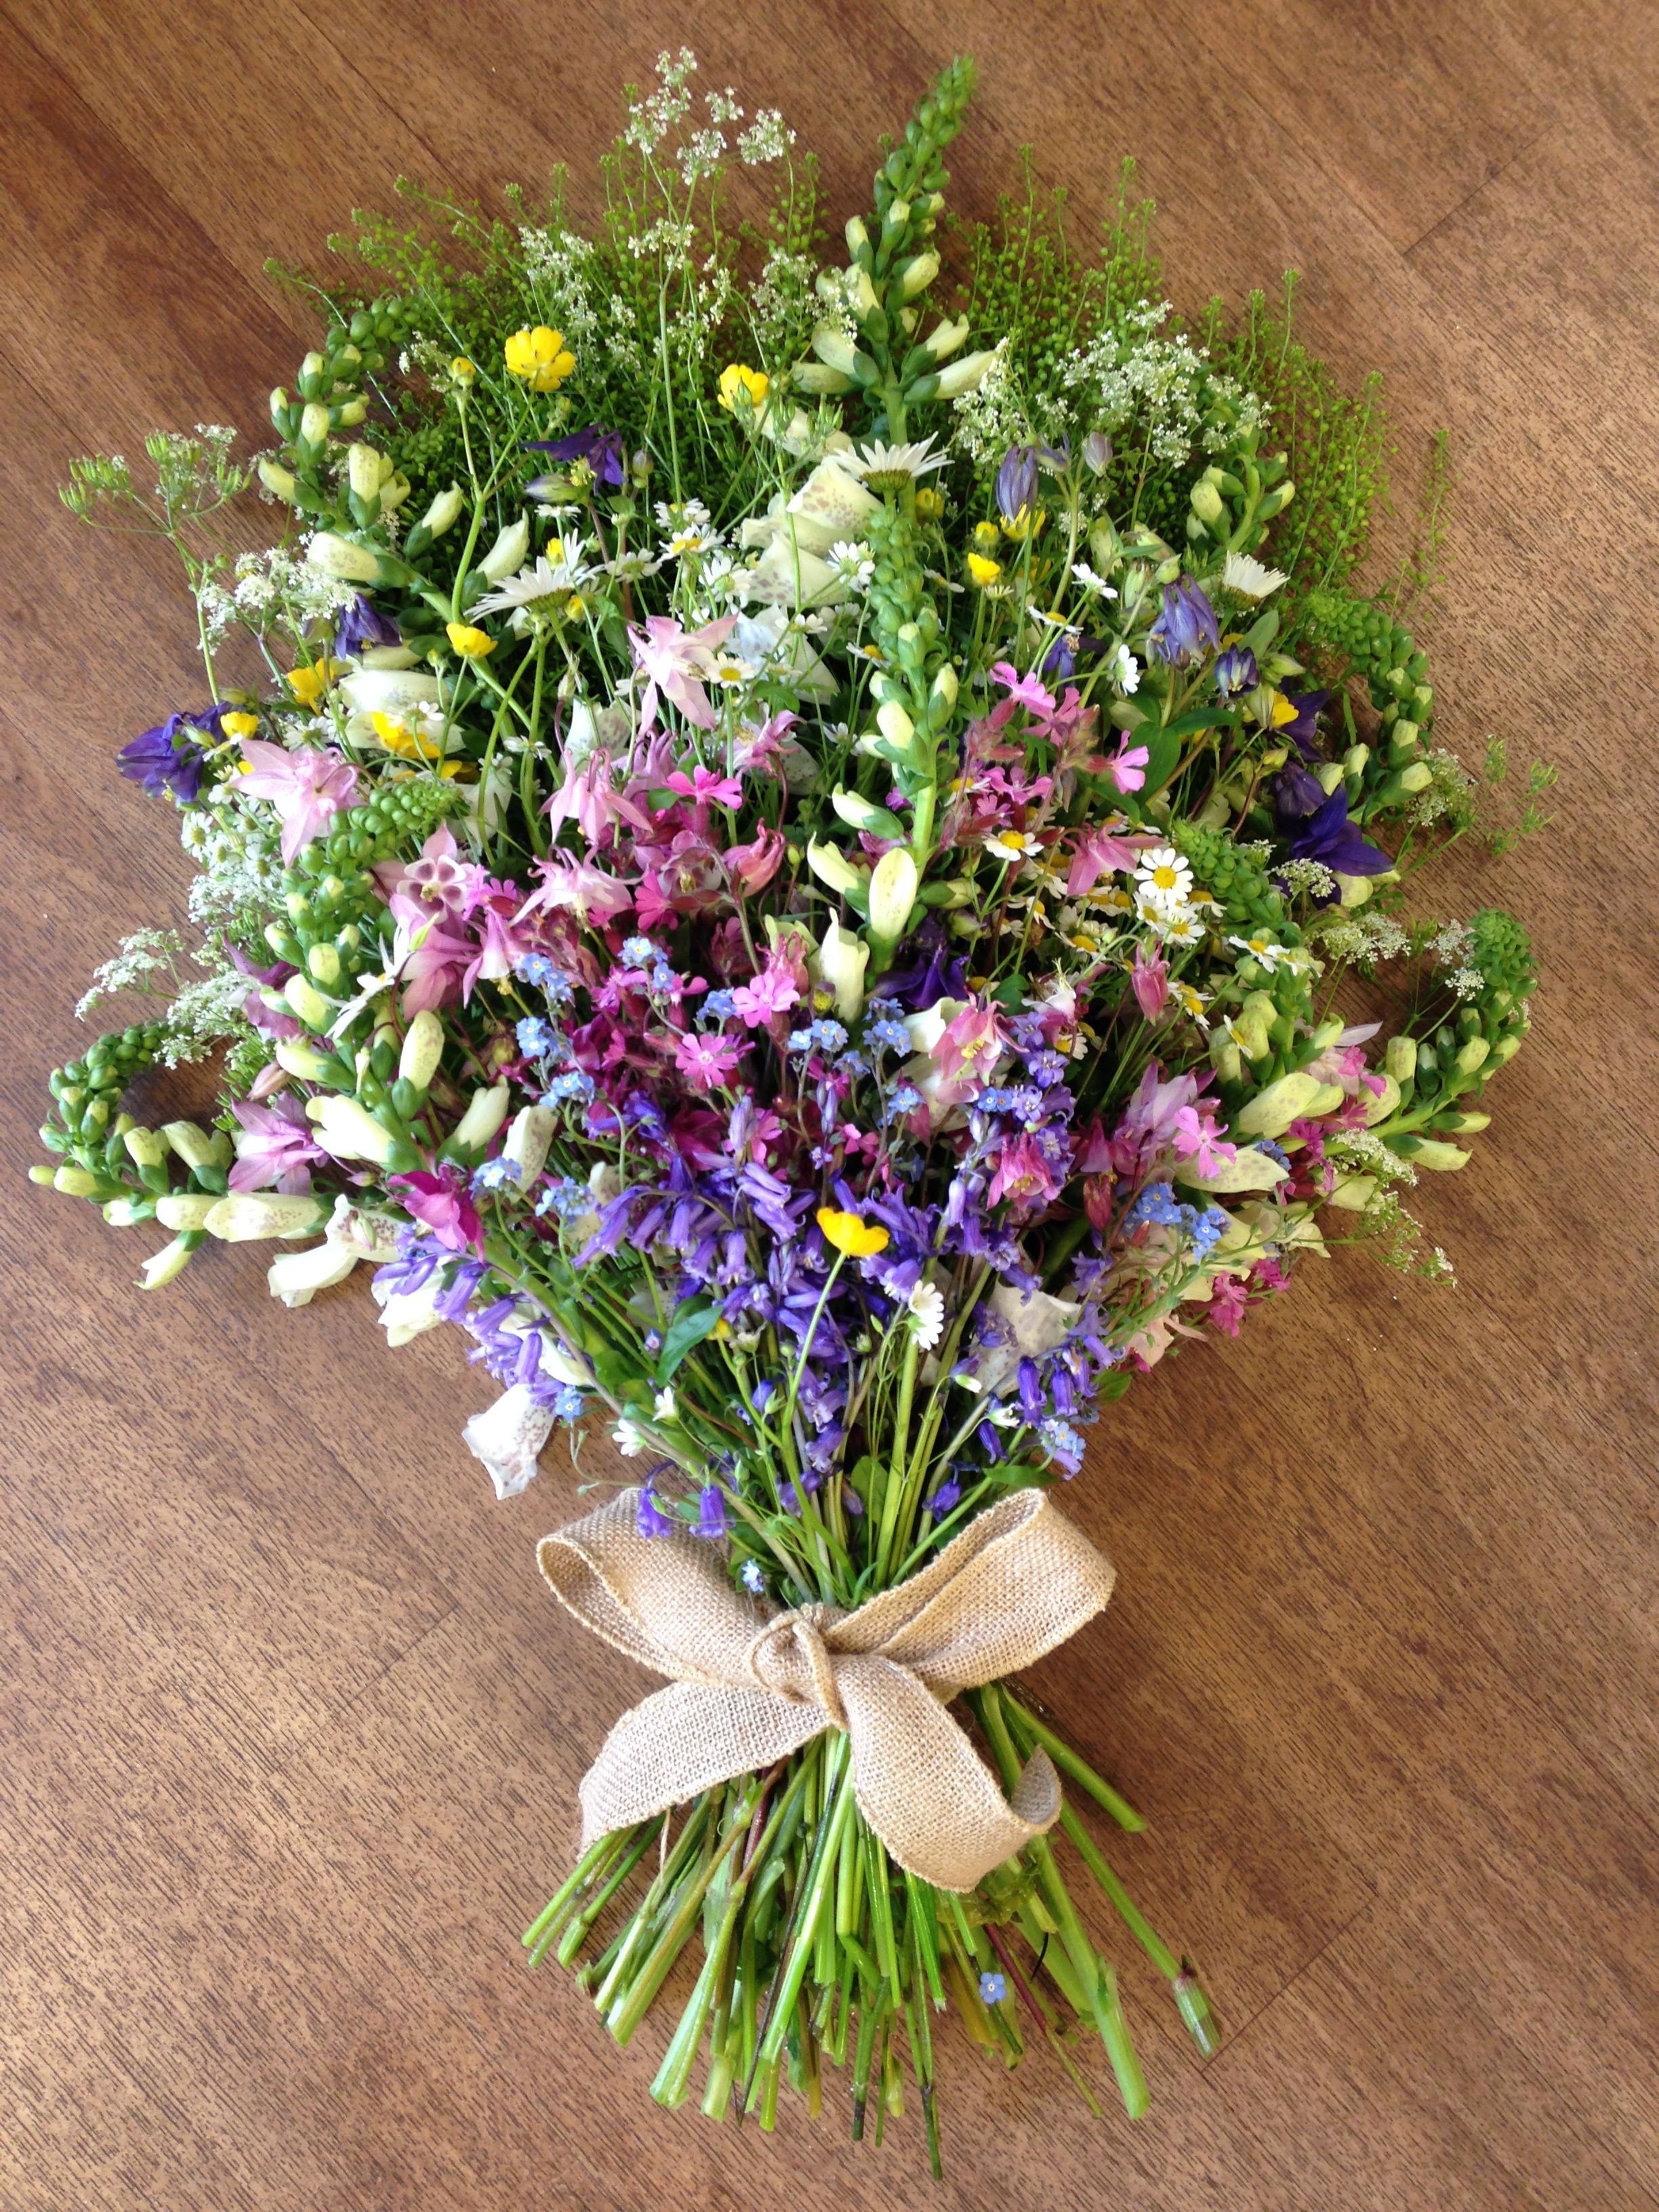 An Informal Collection Of Wild Flowers For A Funeral Sympathy